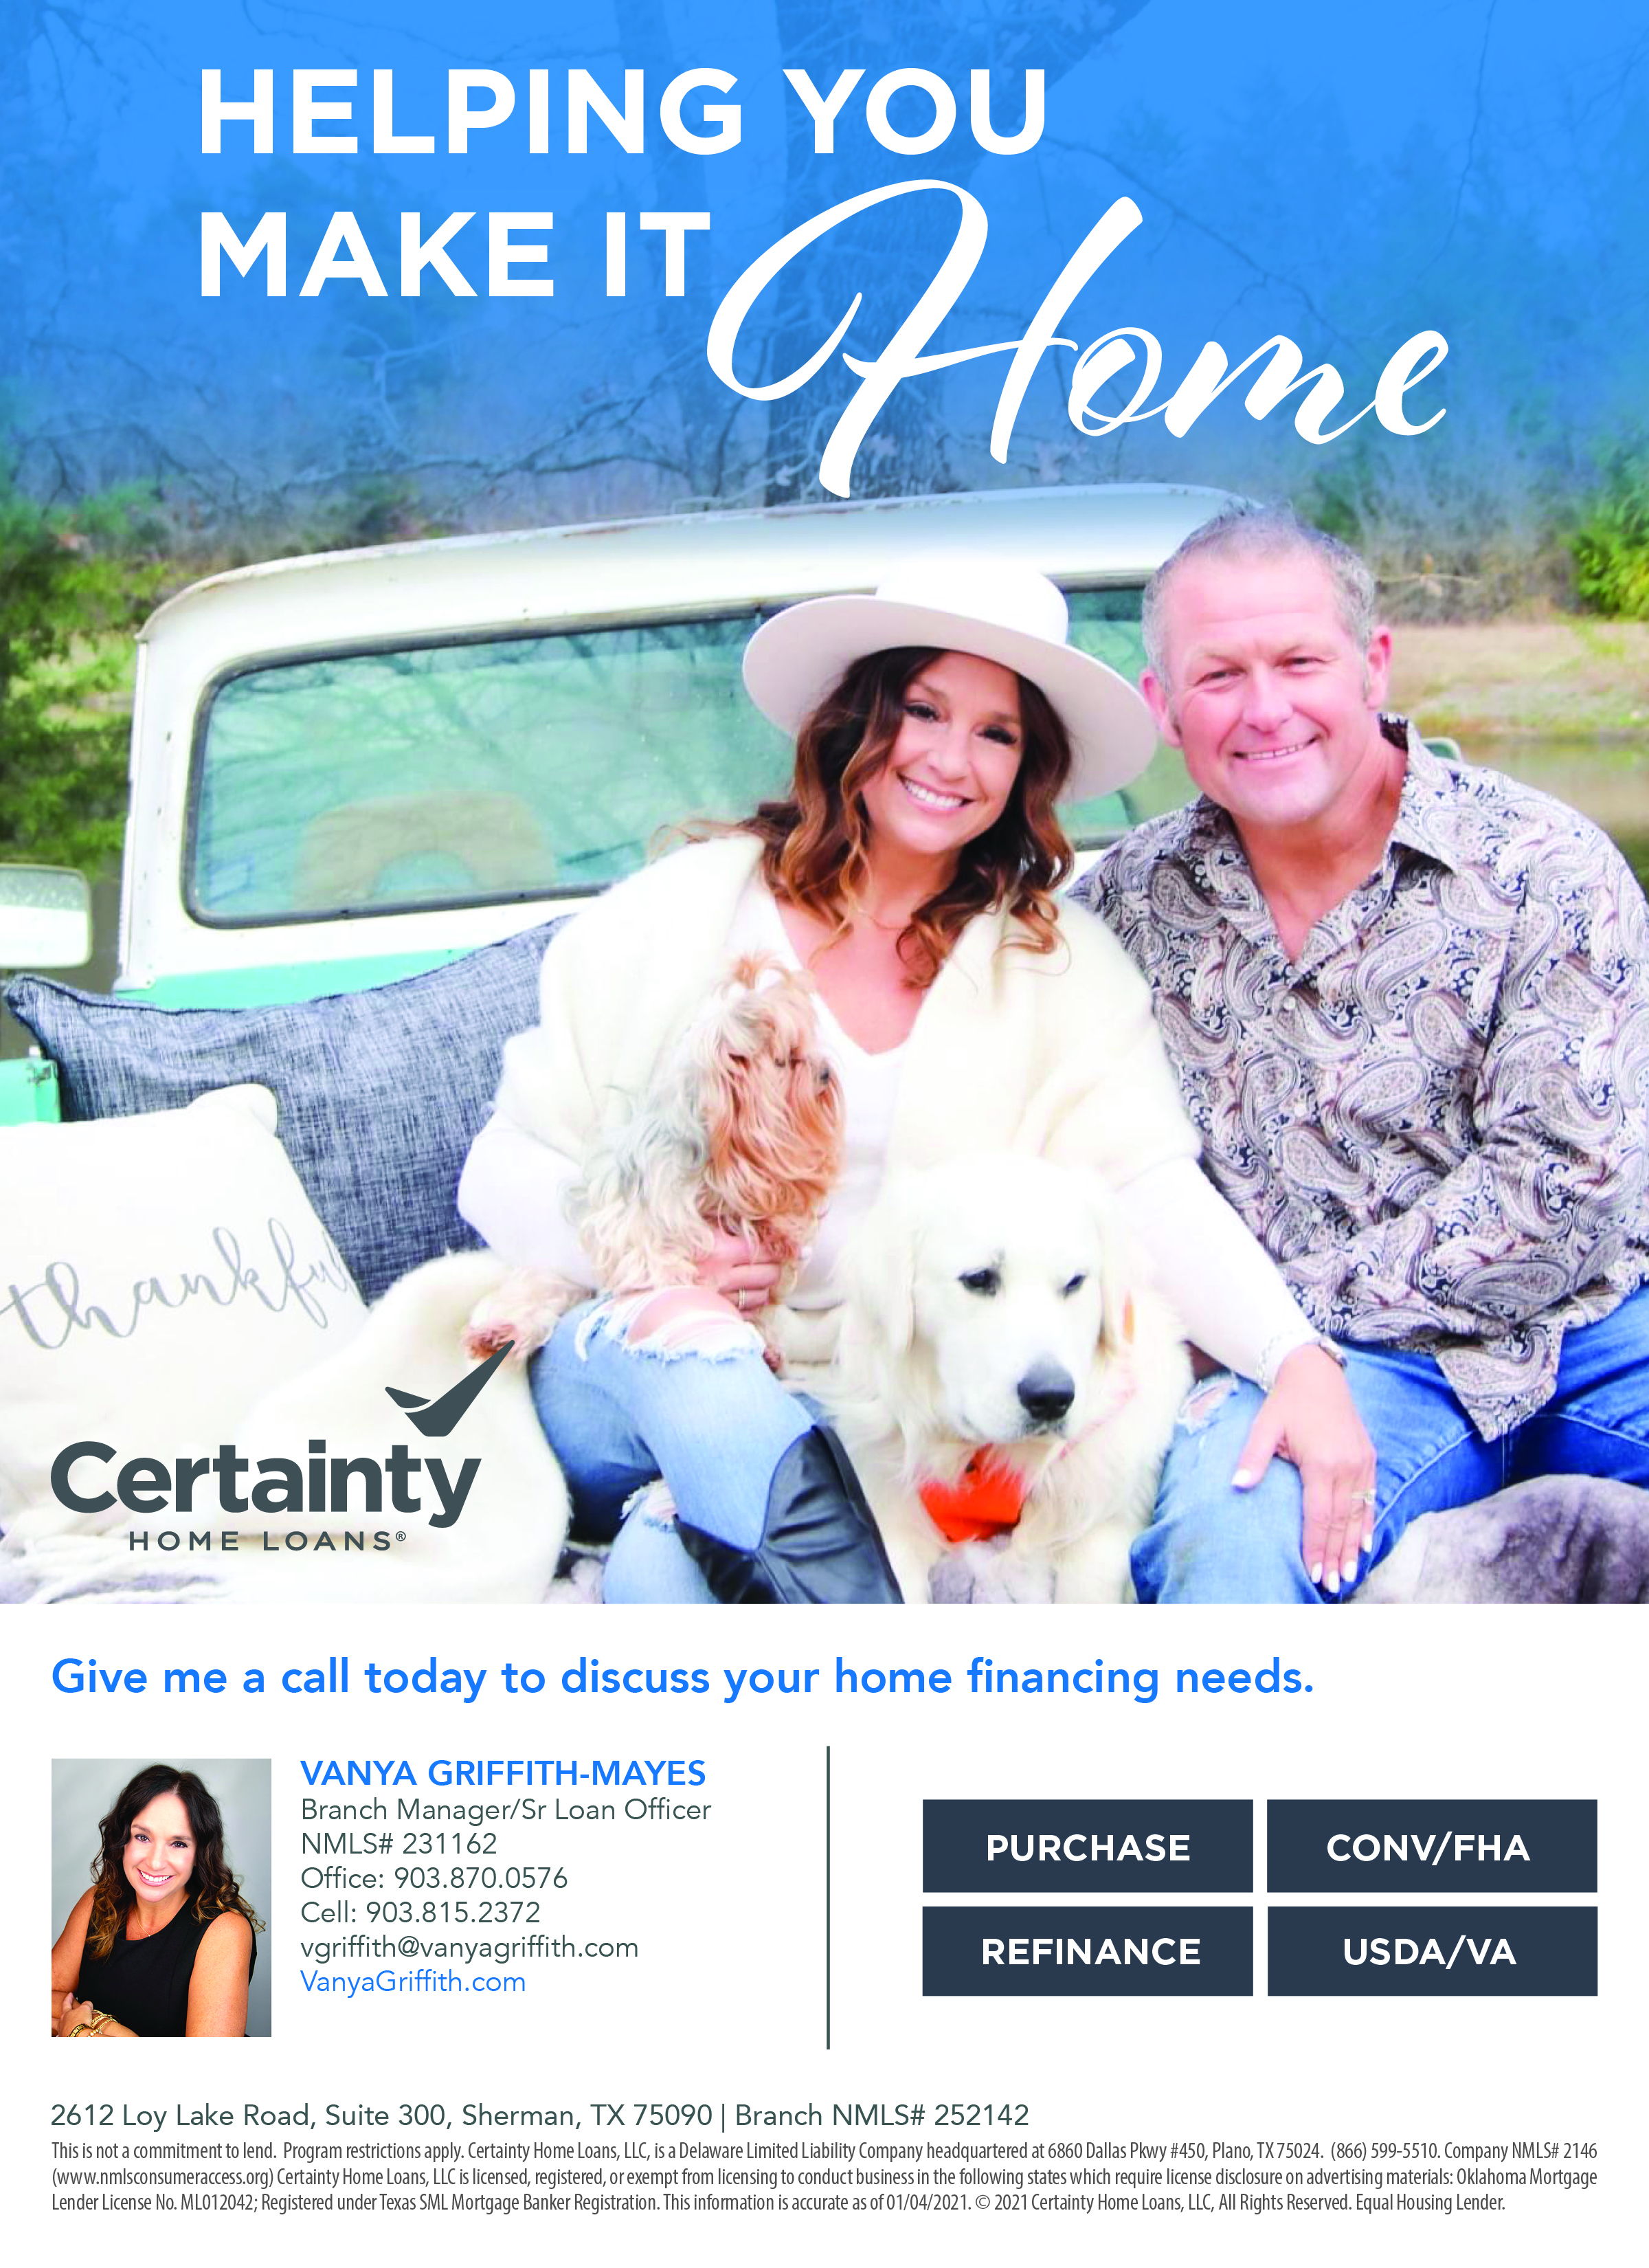 Certainty Home Loans